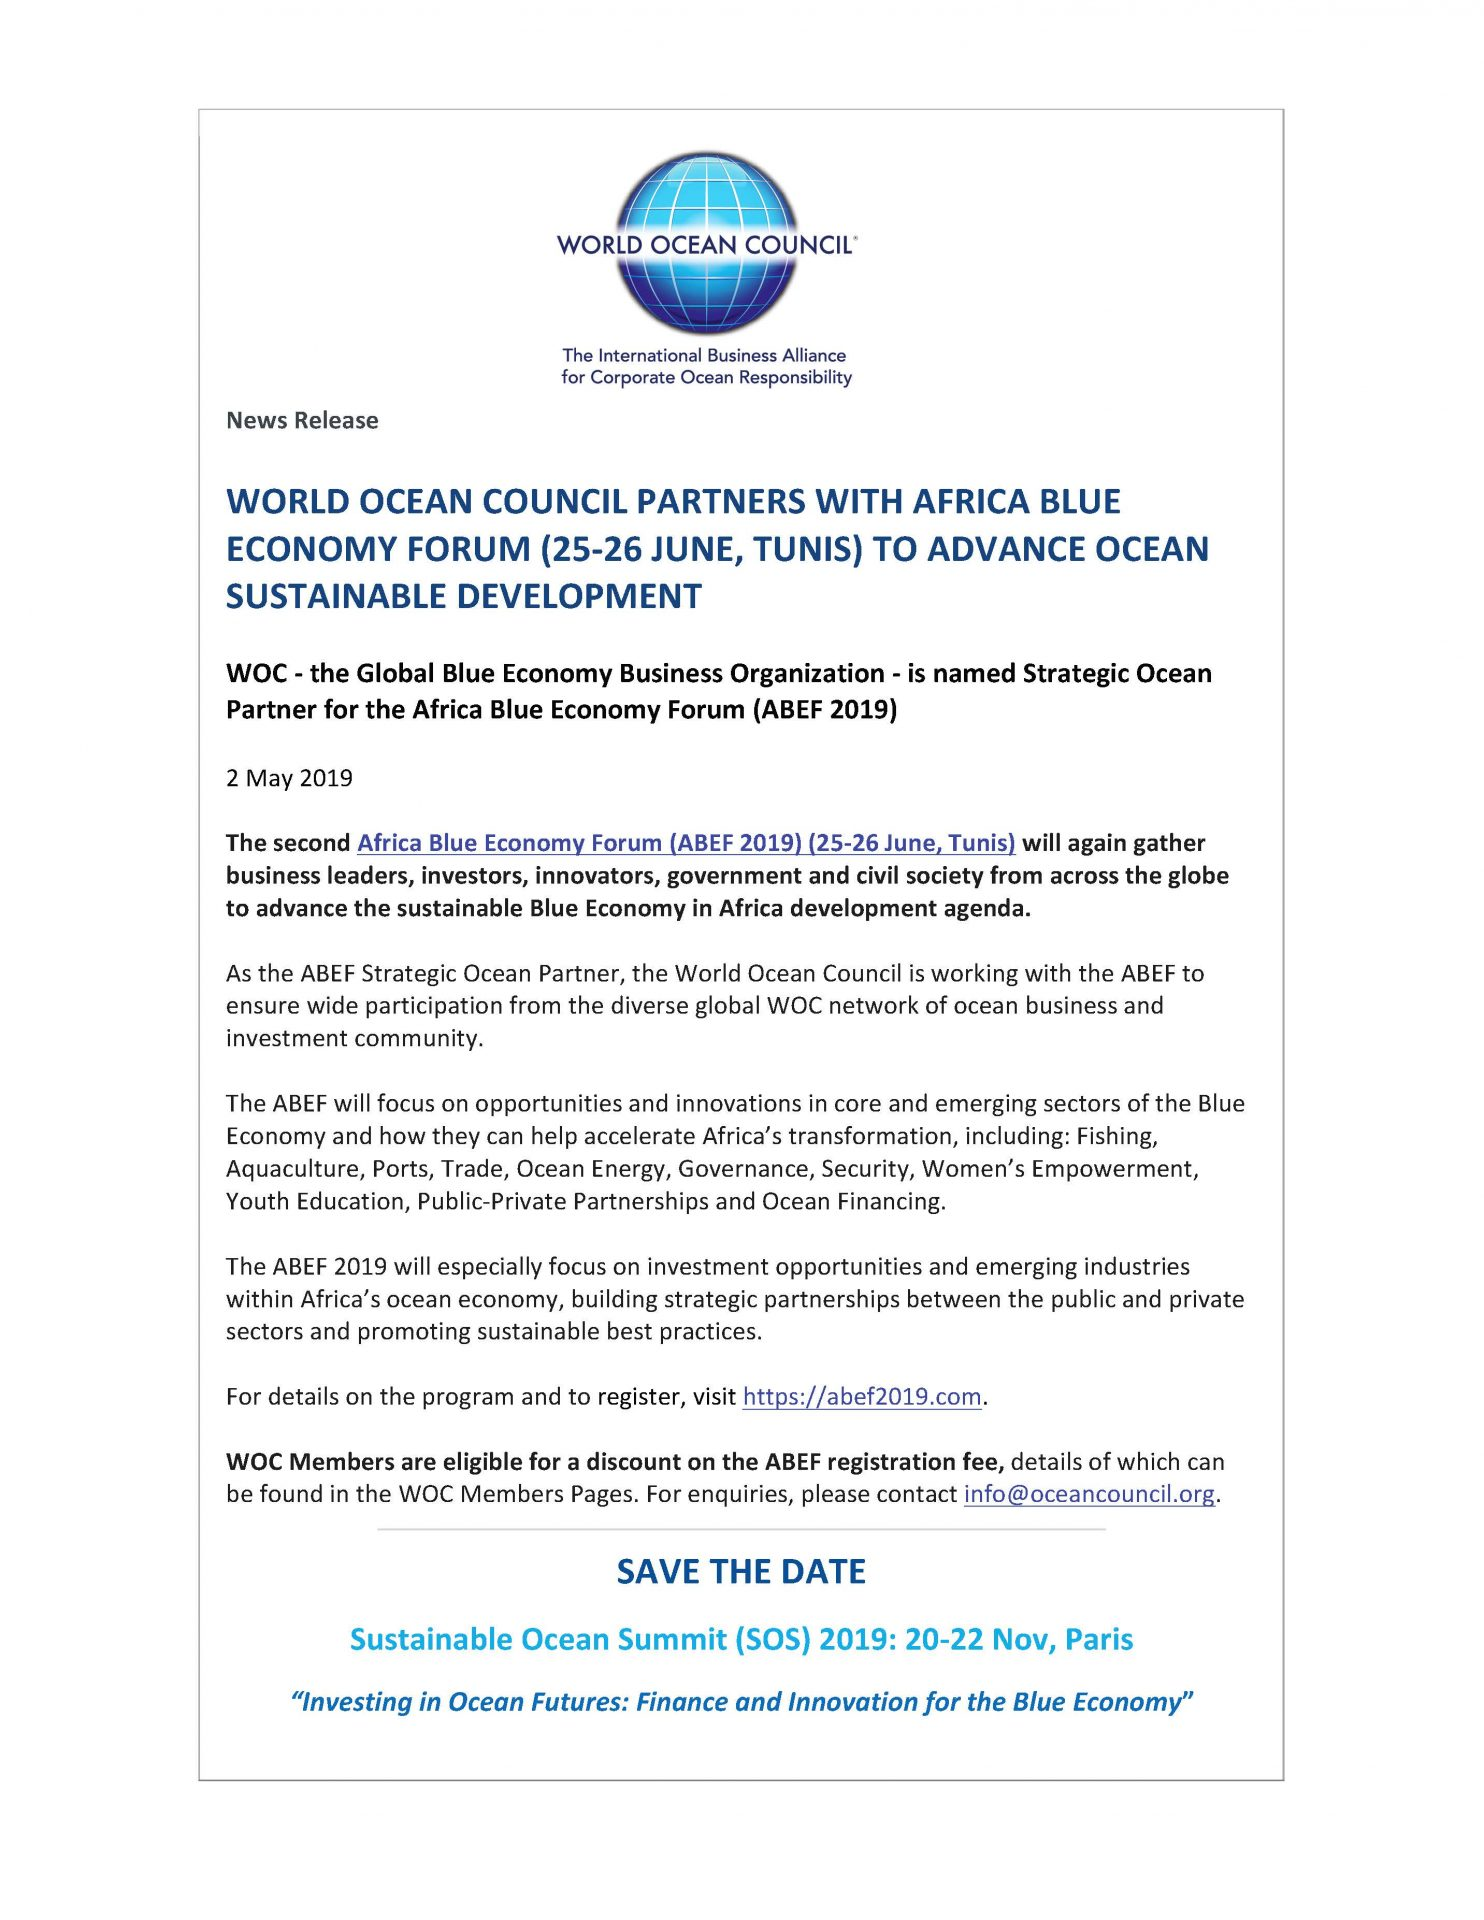 World Ocean Council Partners with Africa Blue Economy Forum (25-26 June, Tunis) to Advance Ocean Sustainable Development - 2 May 2019